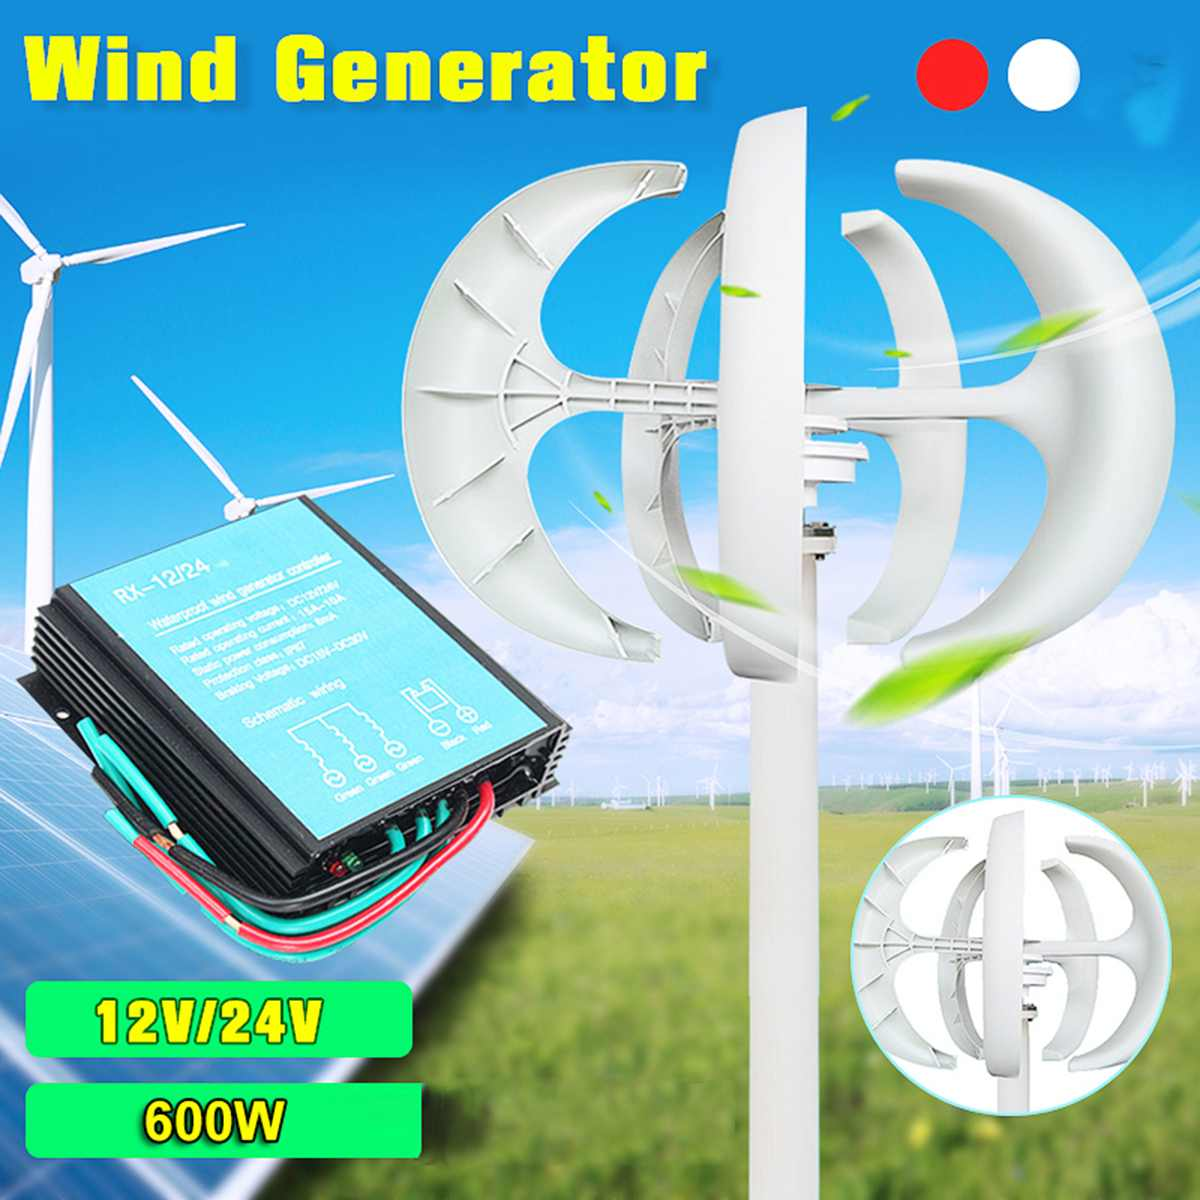 100w/200w/300w/600W 12 24V Vertical Axis Wind Turbine Generator VAWT Boat Garden with Controller Home Residential Use image